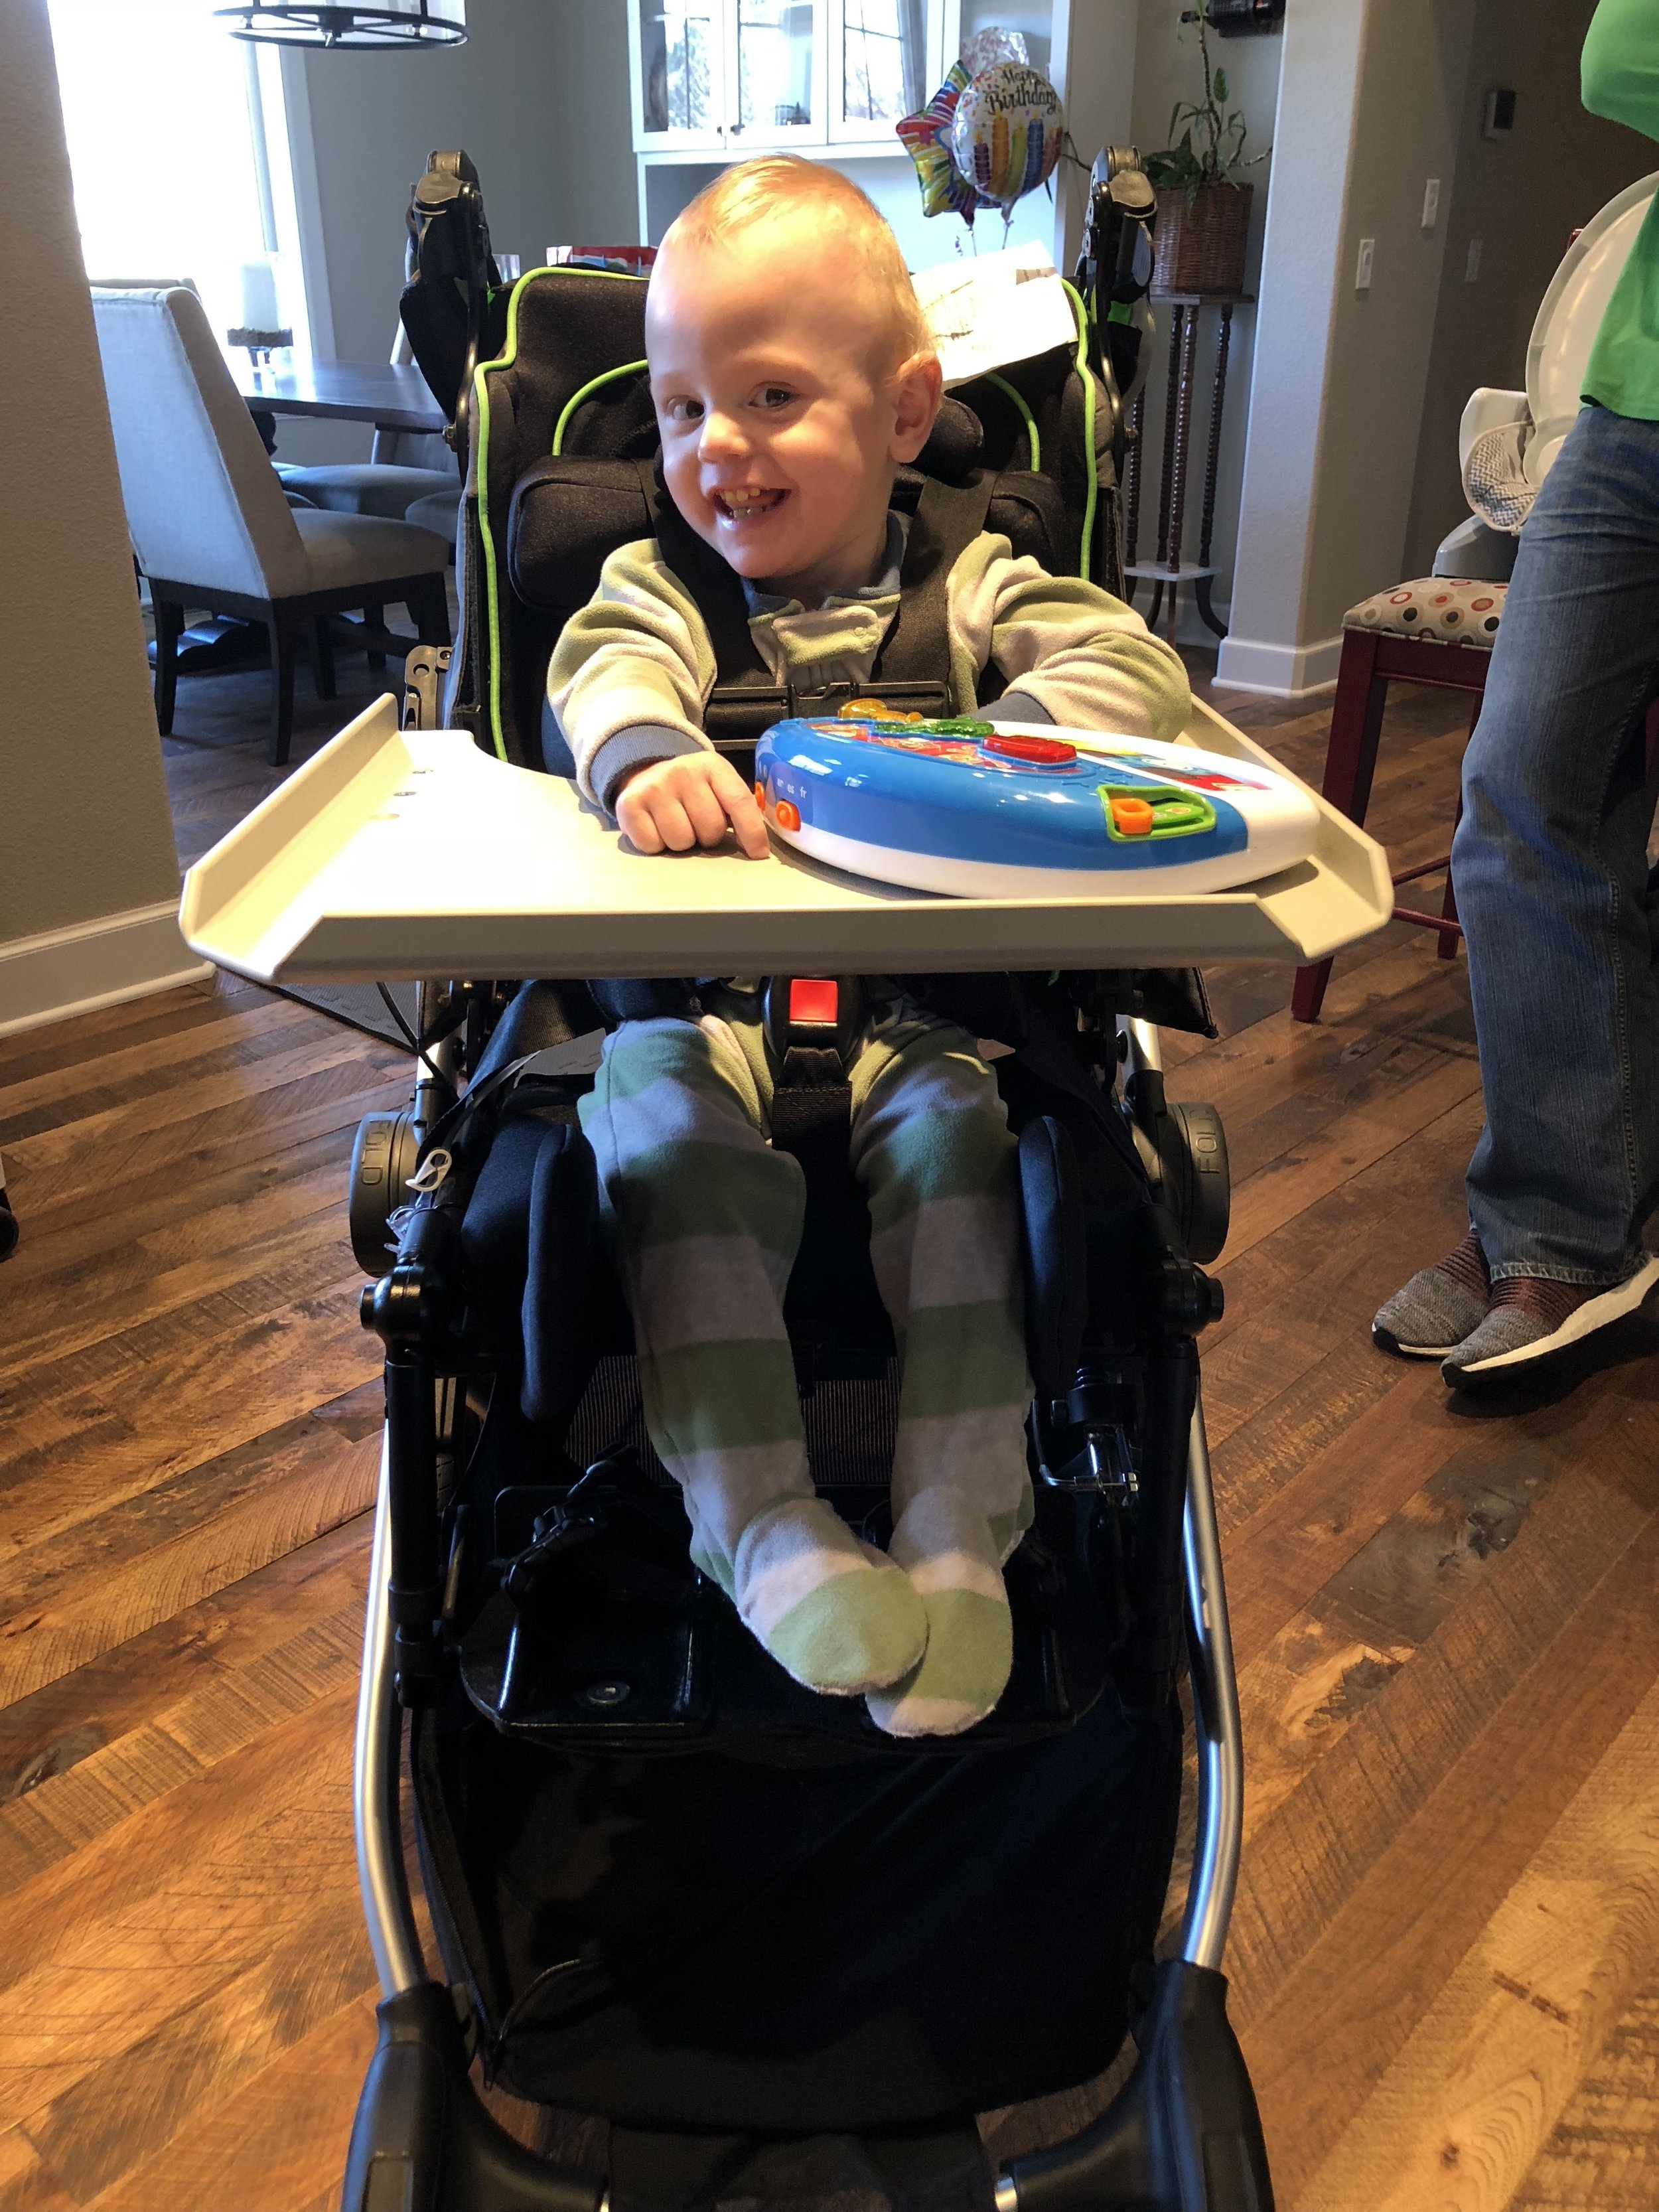 Testing out a Zippy Voyage medical stroller